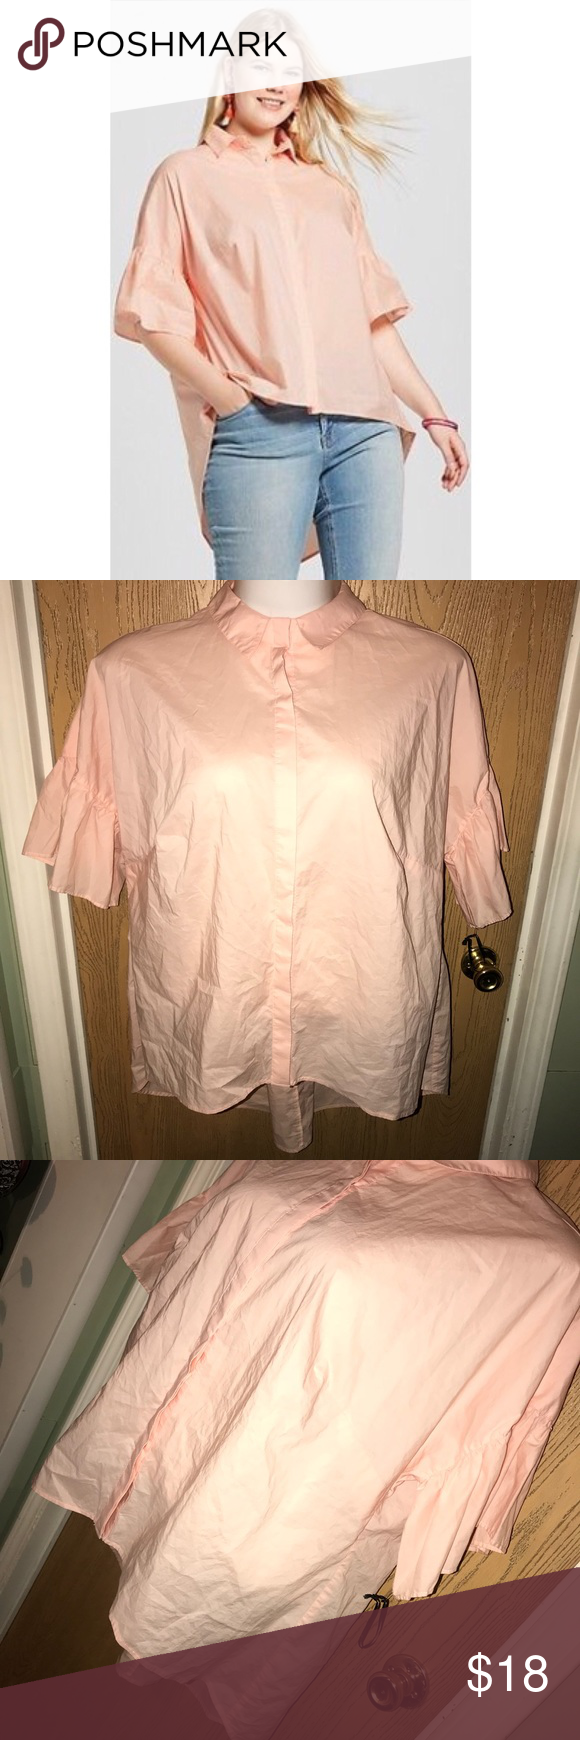 "⬇️Peach bell sleeve button up top Super cute light peach bell sleeve top.  ❗️Please no low ball offers.❗️ ❗️Bundles always get a discount.❗️ Please check measurements before purchasing.  Condition: NWOT Measurements- Armpit to armpit: 28"" Total length: 27"" to shortest part of hem, back is longer   Smoke free home but I have a small dog.  Thanks for checking out my closet! ❤️ Ava & Viv Tops"